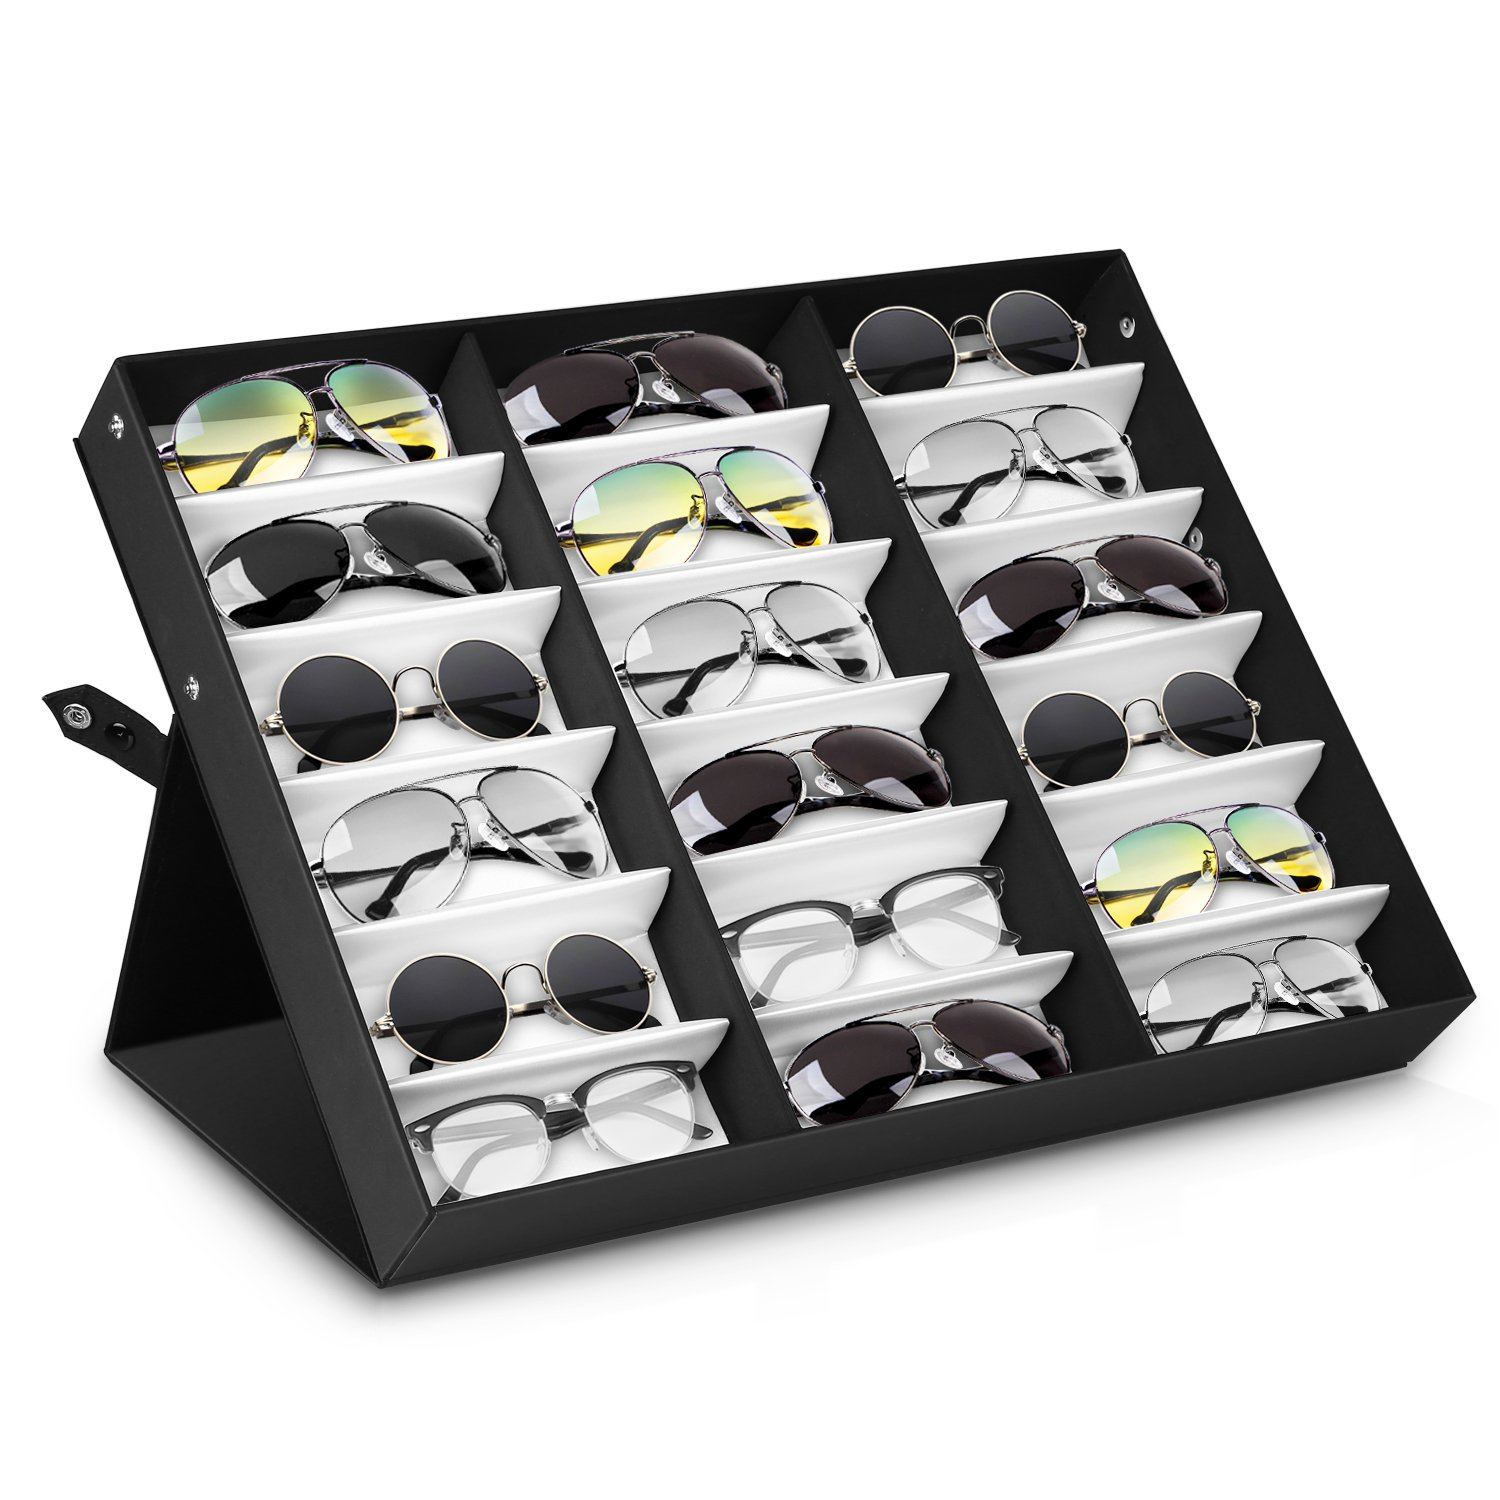 Amzdeal Sunglasses Display Case 18 Slot Sunglass Eyewear Display Storage Case Tray Gift for Him Her